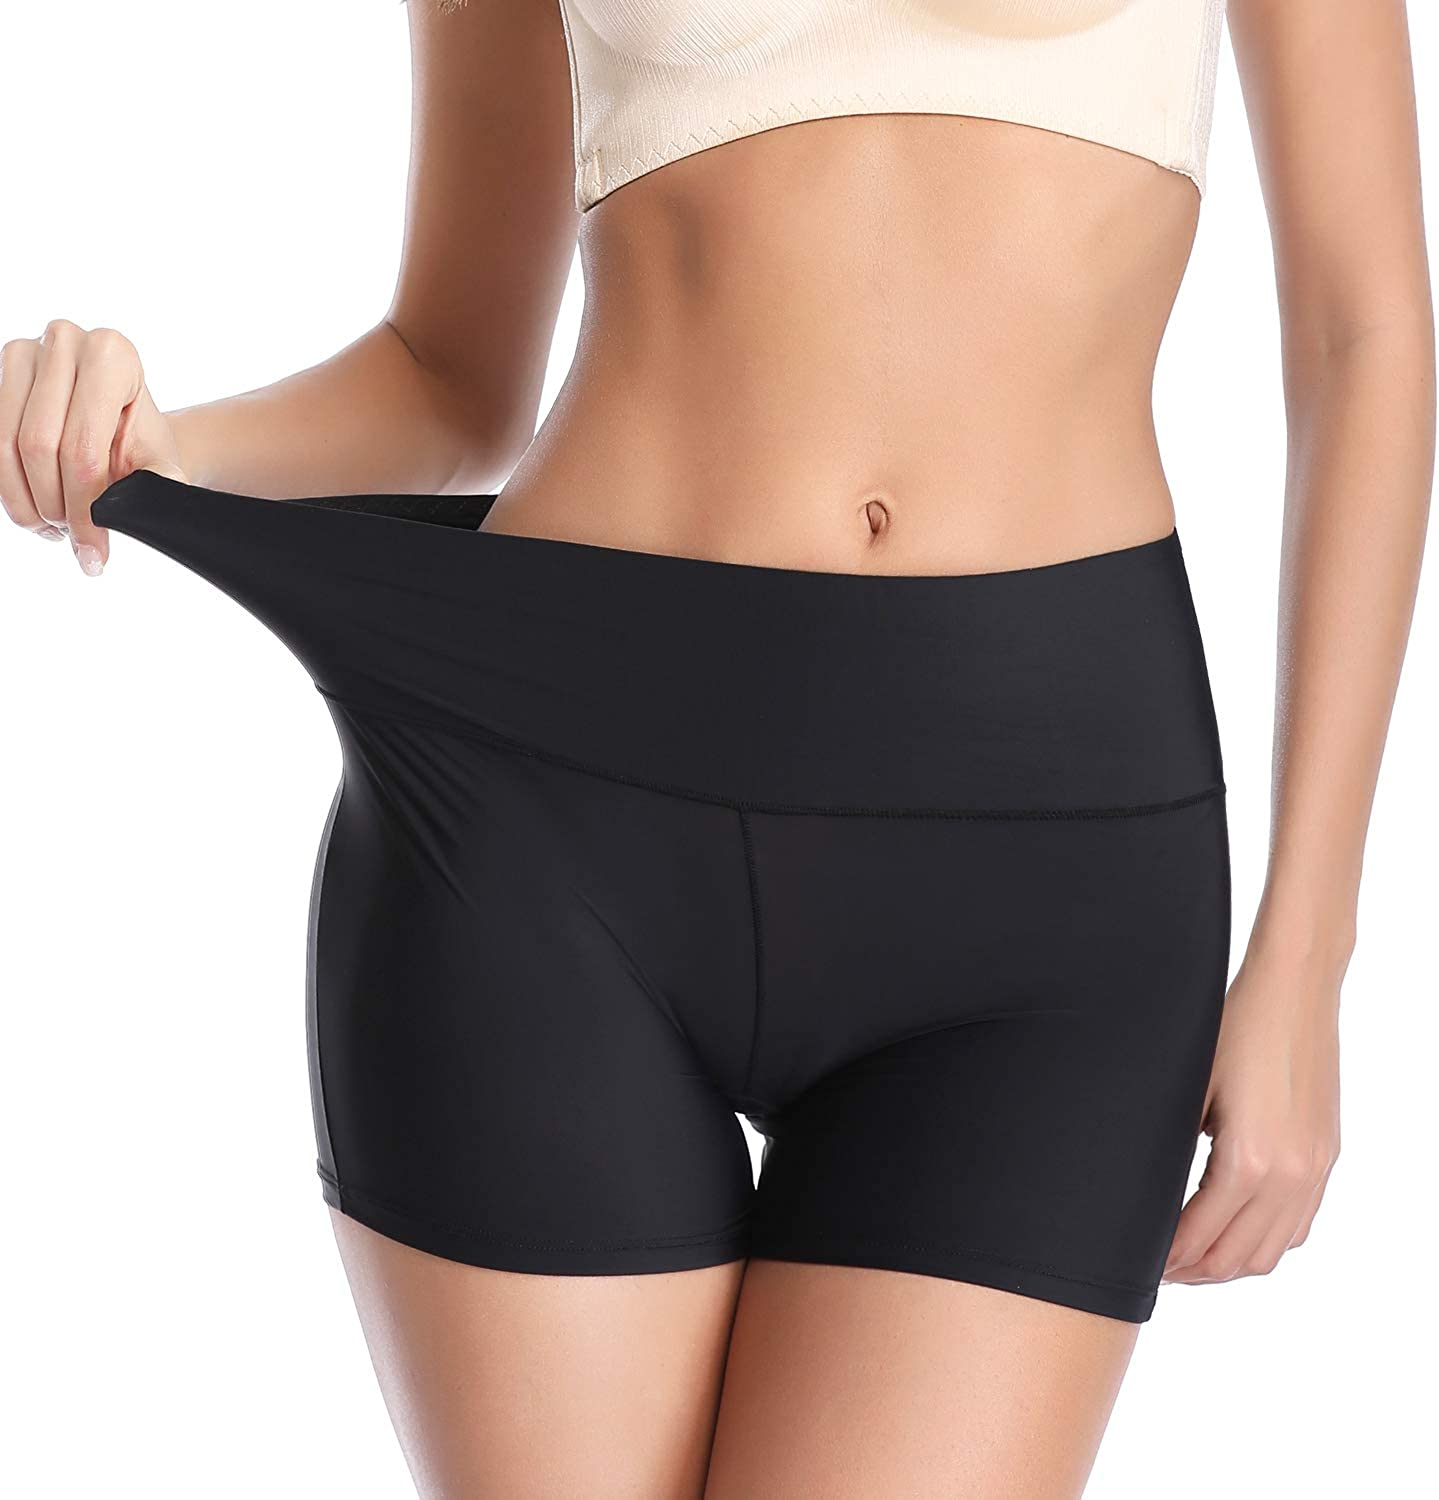 Lace Anti-Chafing Slip Shorts Under Dresses Underwear for Women Safety Shorts Underskirts